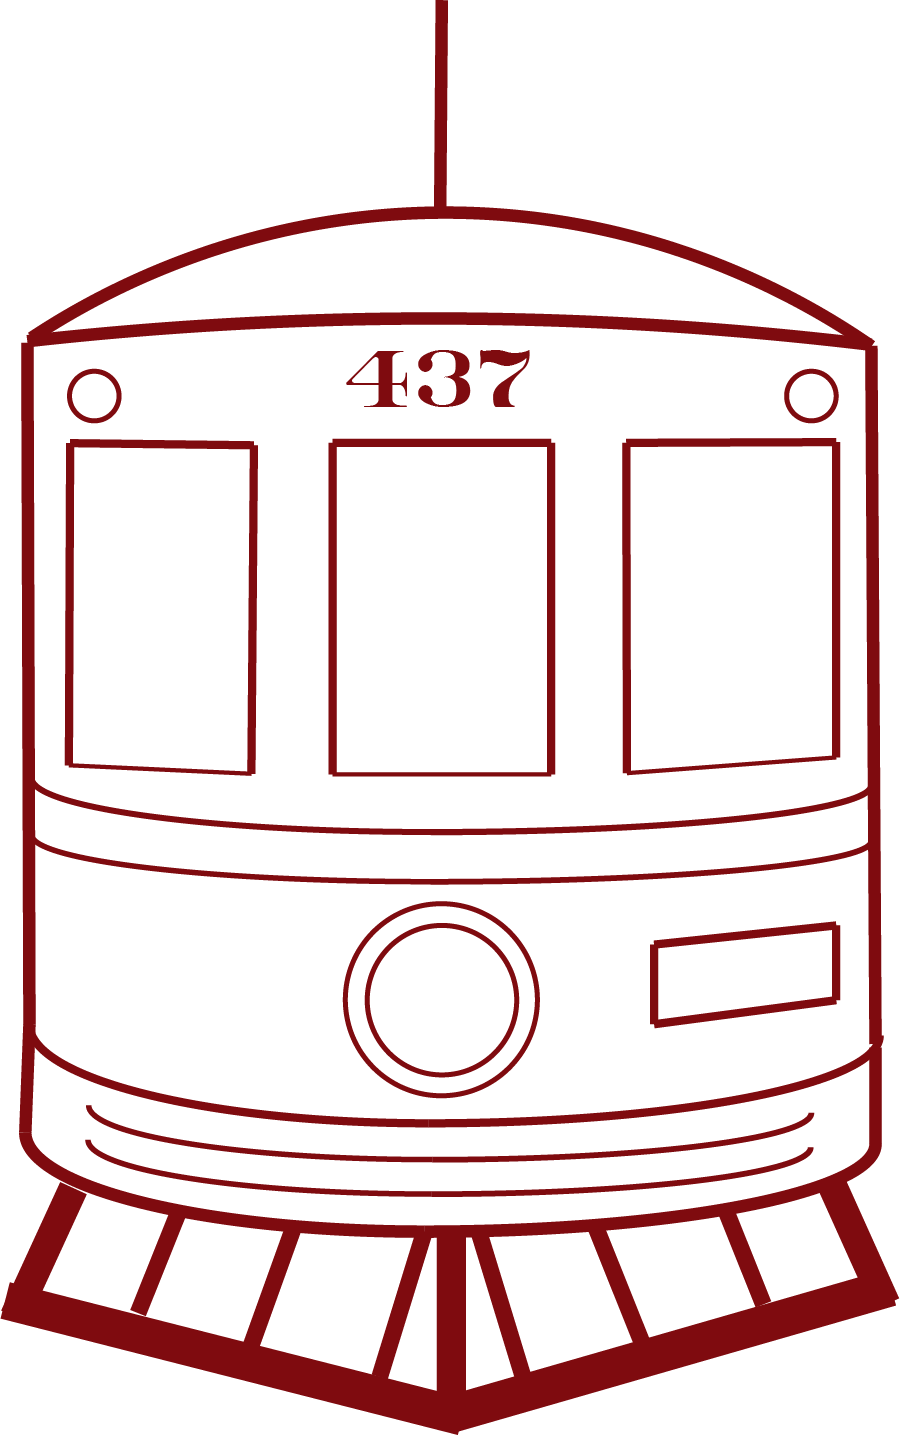 437, an interurban built for intercity passenger travel via electric  railway with frequent and numerous stops, is considered one of the last  great electric ...